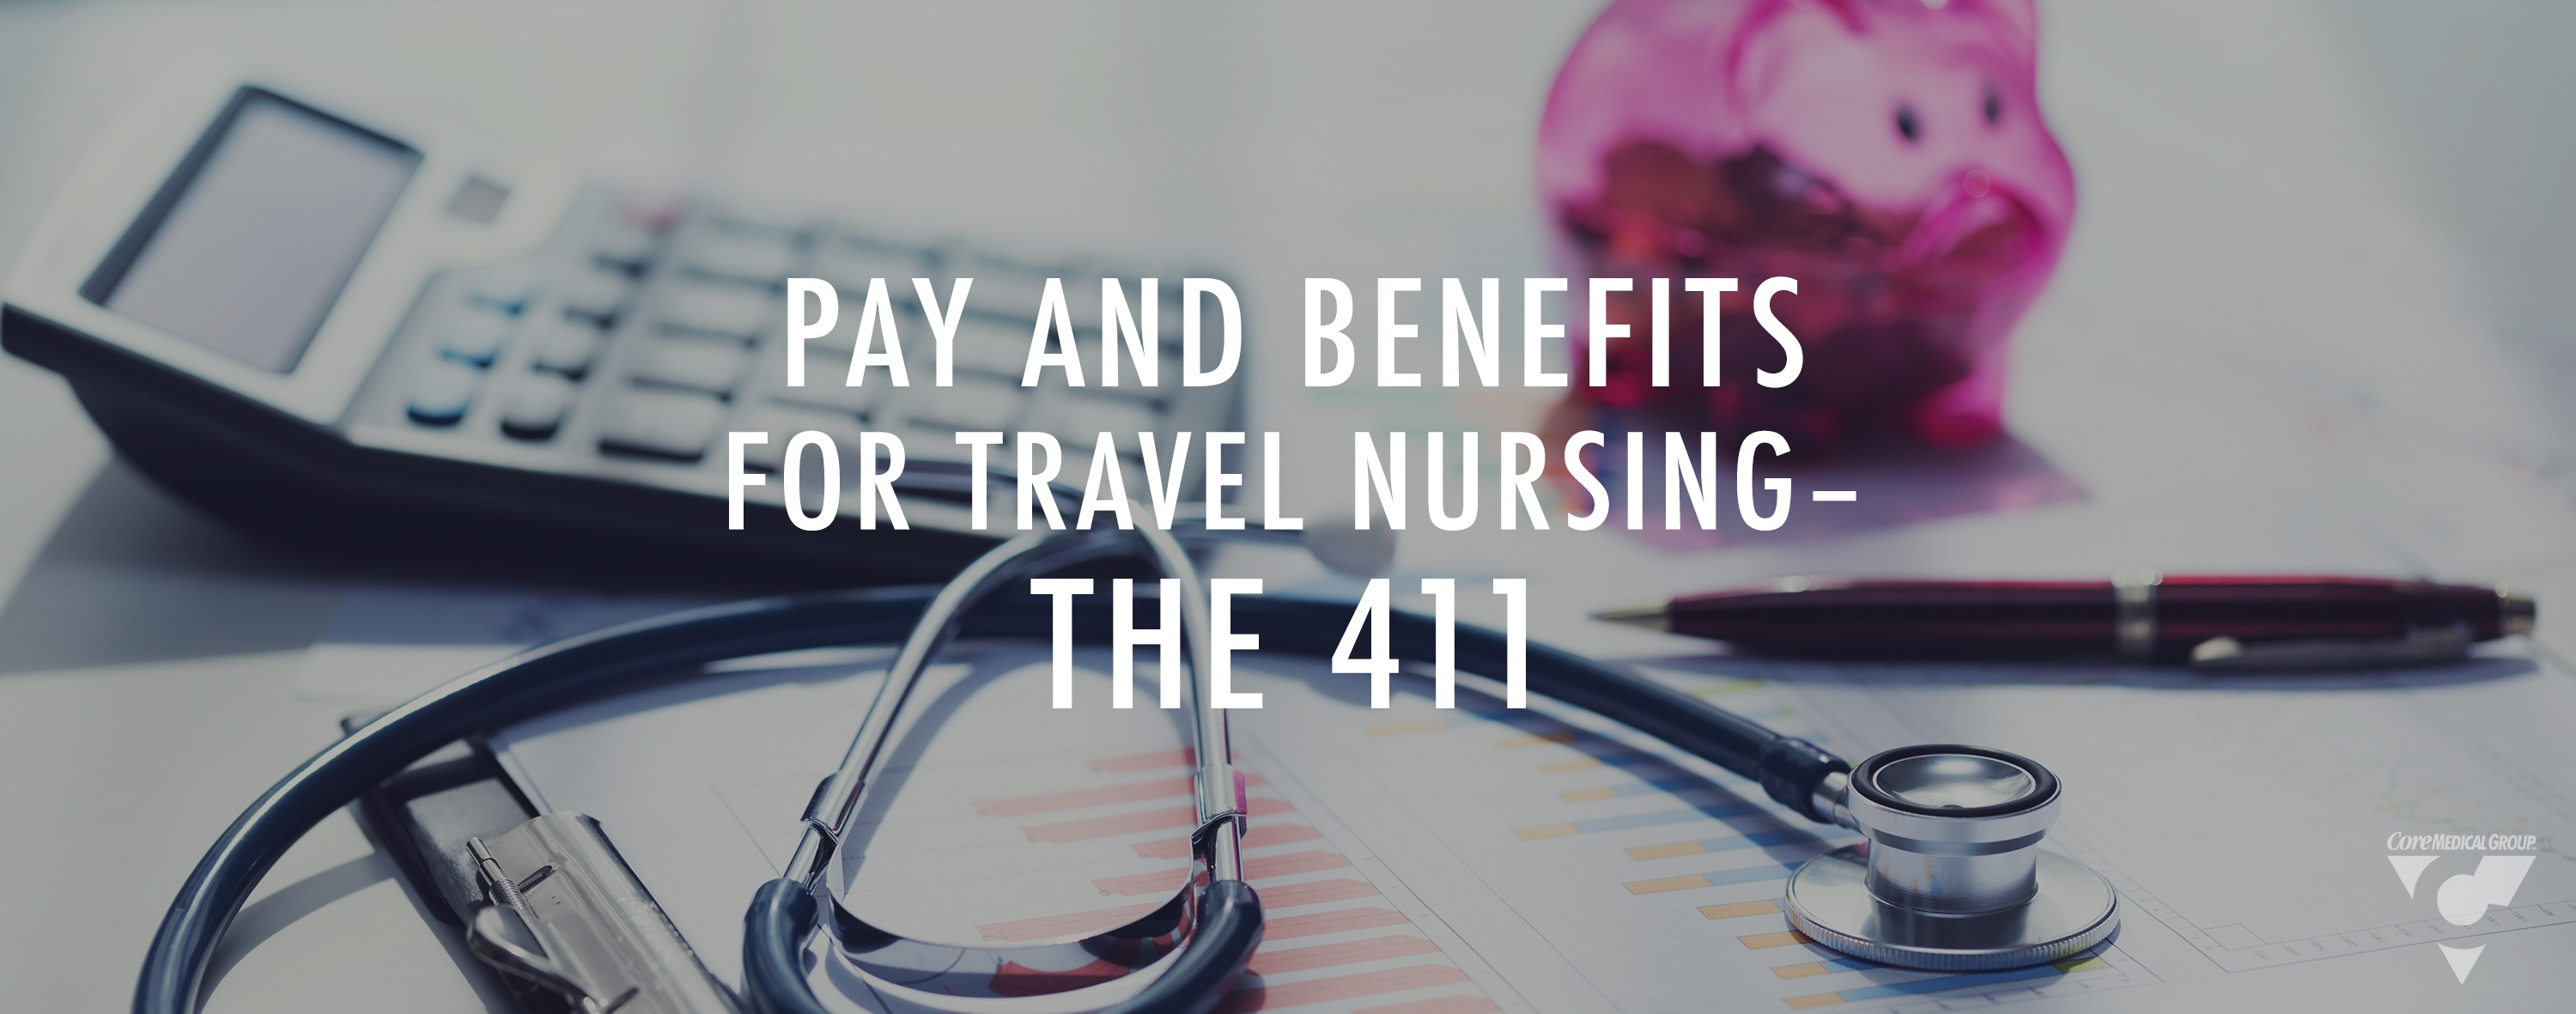 Pay And Benefits For Travel Nursing